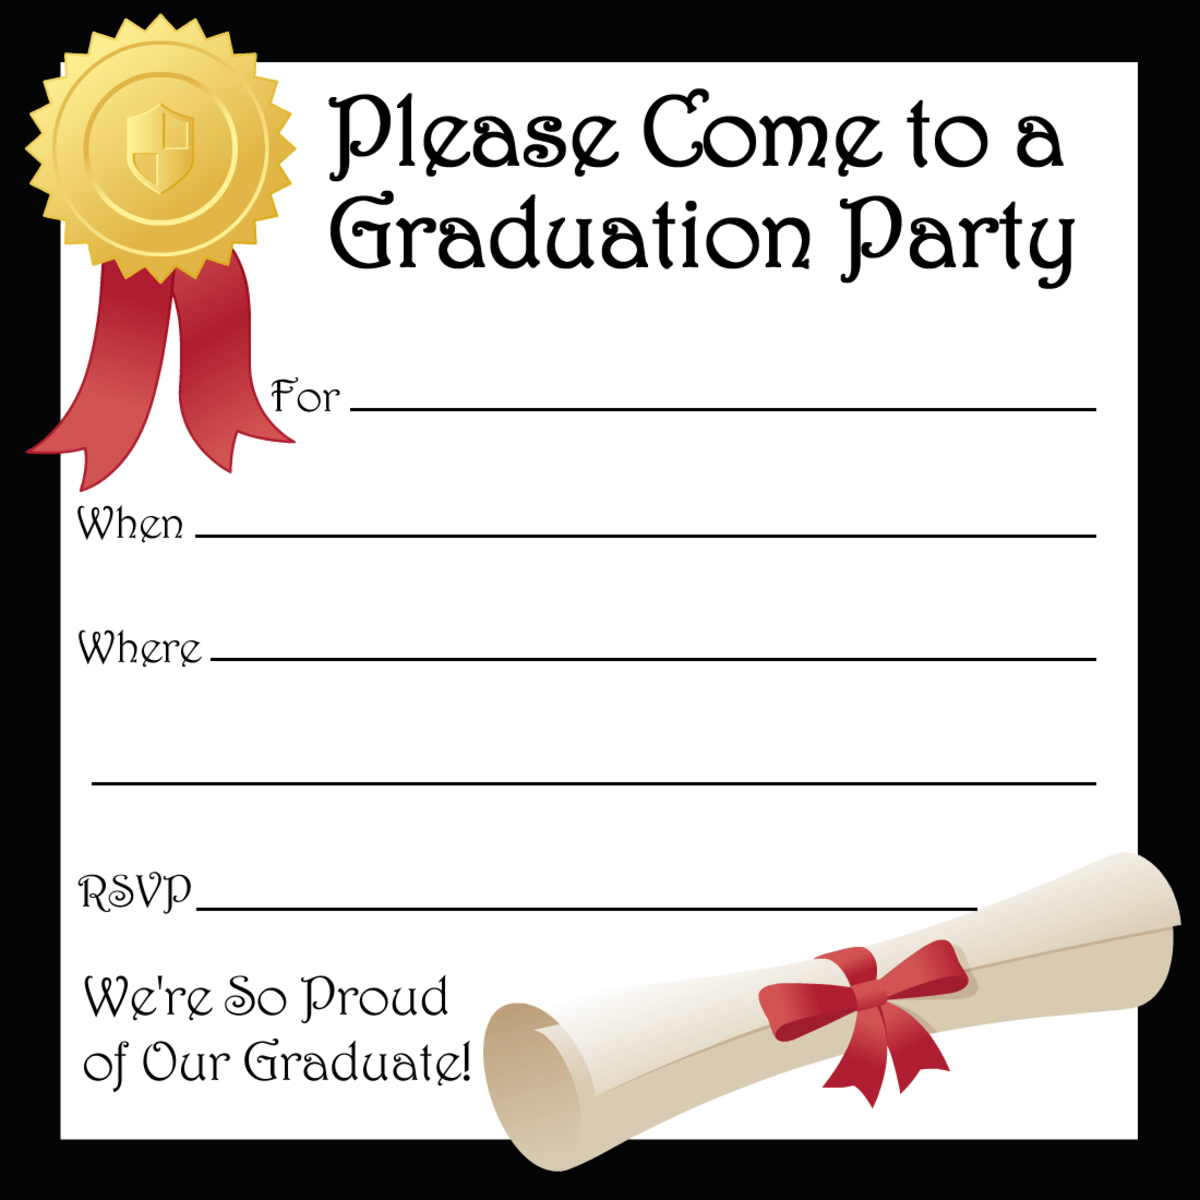 Free Printable Graduation Party Invitations HubPages - graduation party invitations